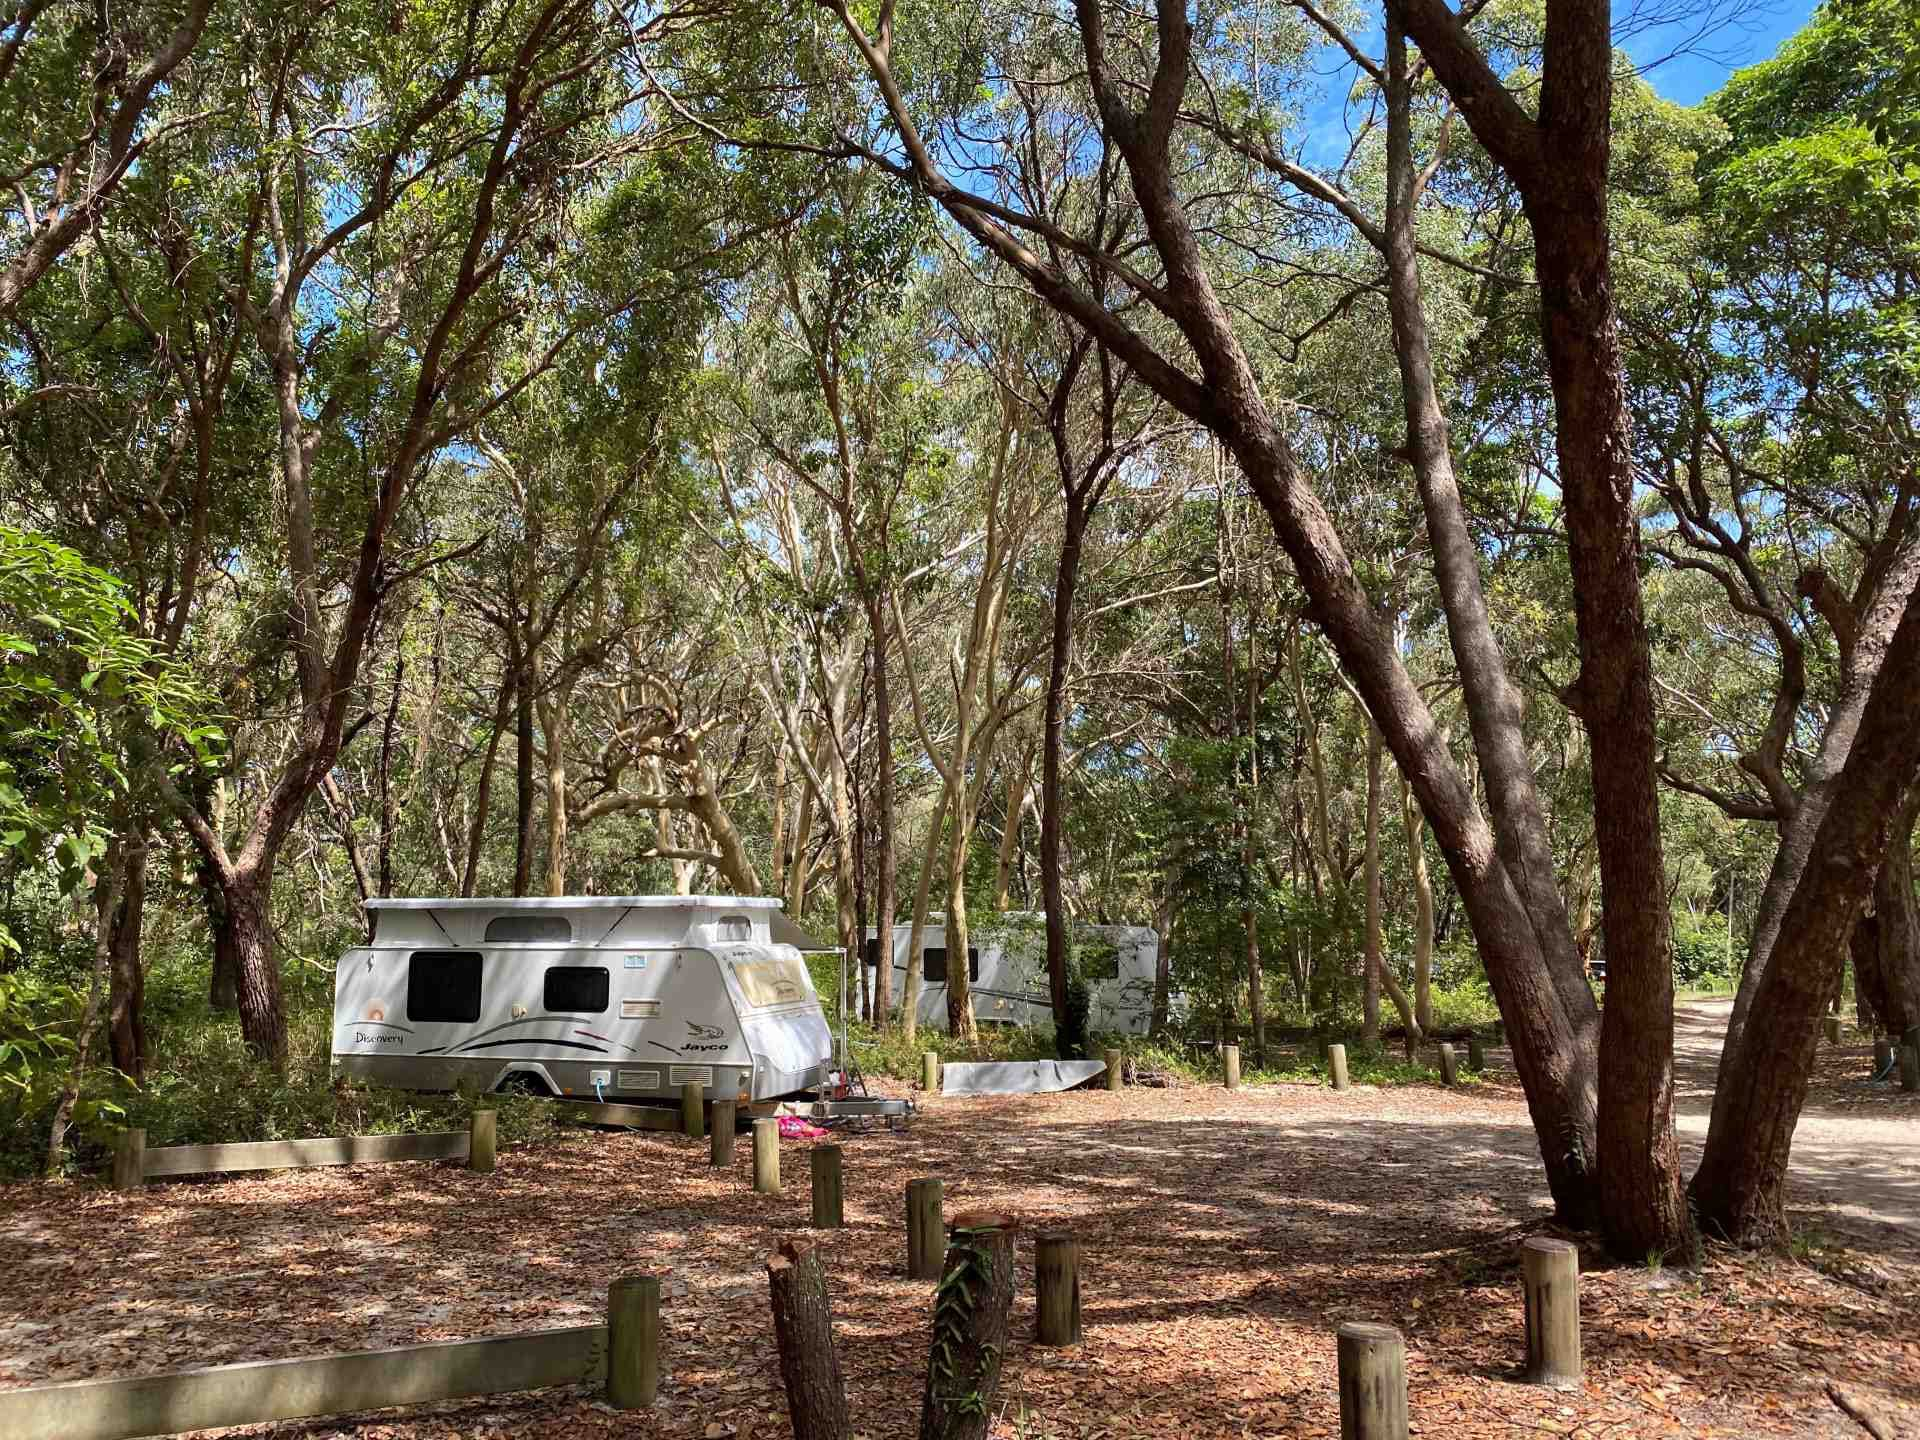 Freshwater Campground, QLD site 216 in CAMPS 11 just near Teewah Beach, south of Rainbow Beach - or find it in the CAMPS AUSTRALIA WIDE App